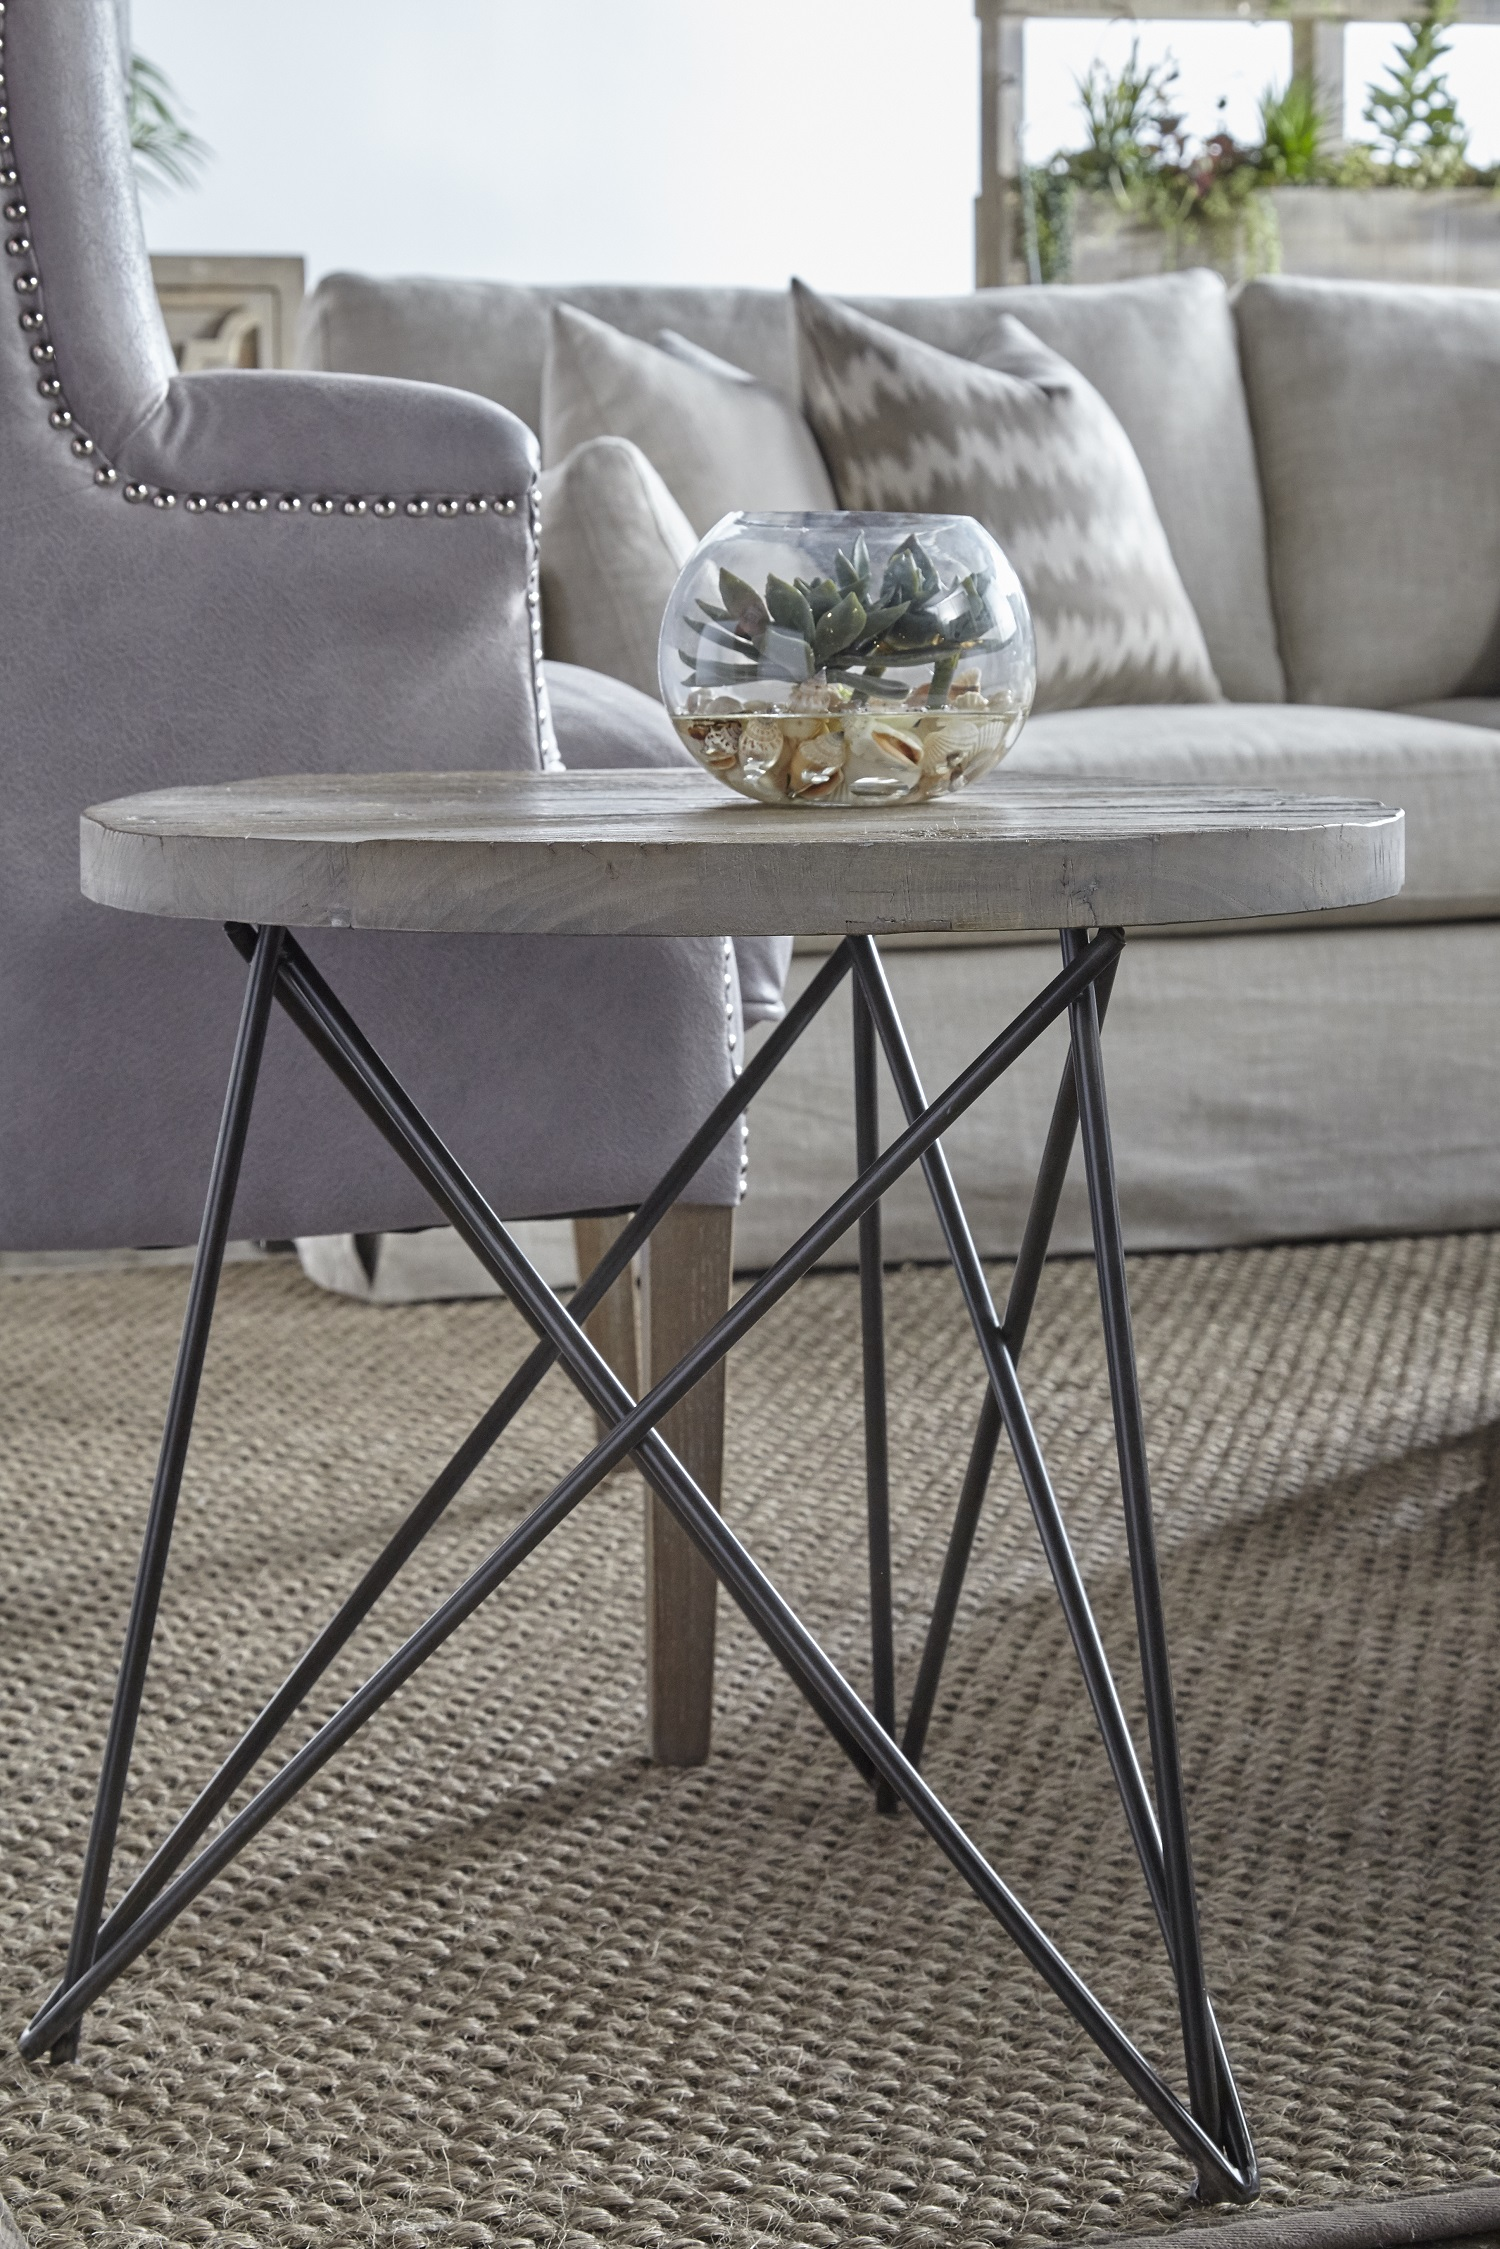 decor gray accent table with afw daren grey elegant canvas office cool bar pier wall west elm bunnings outdoor lounge settings solid wood tall legs made coffee simple end plans